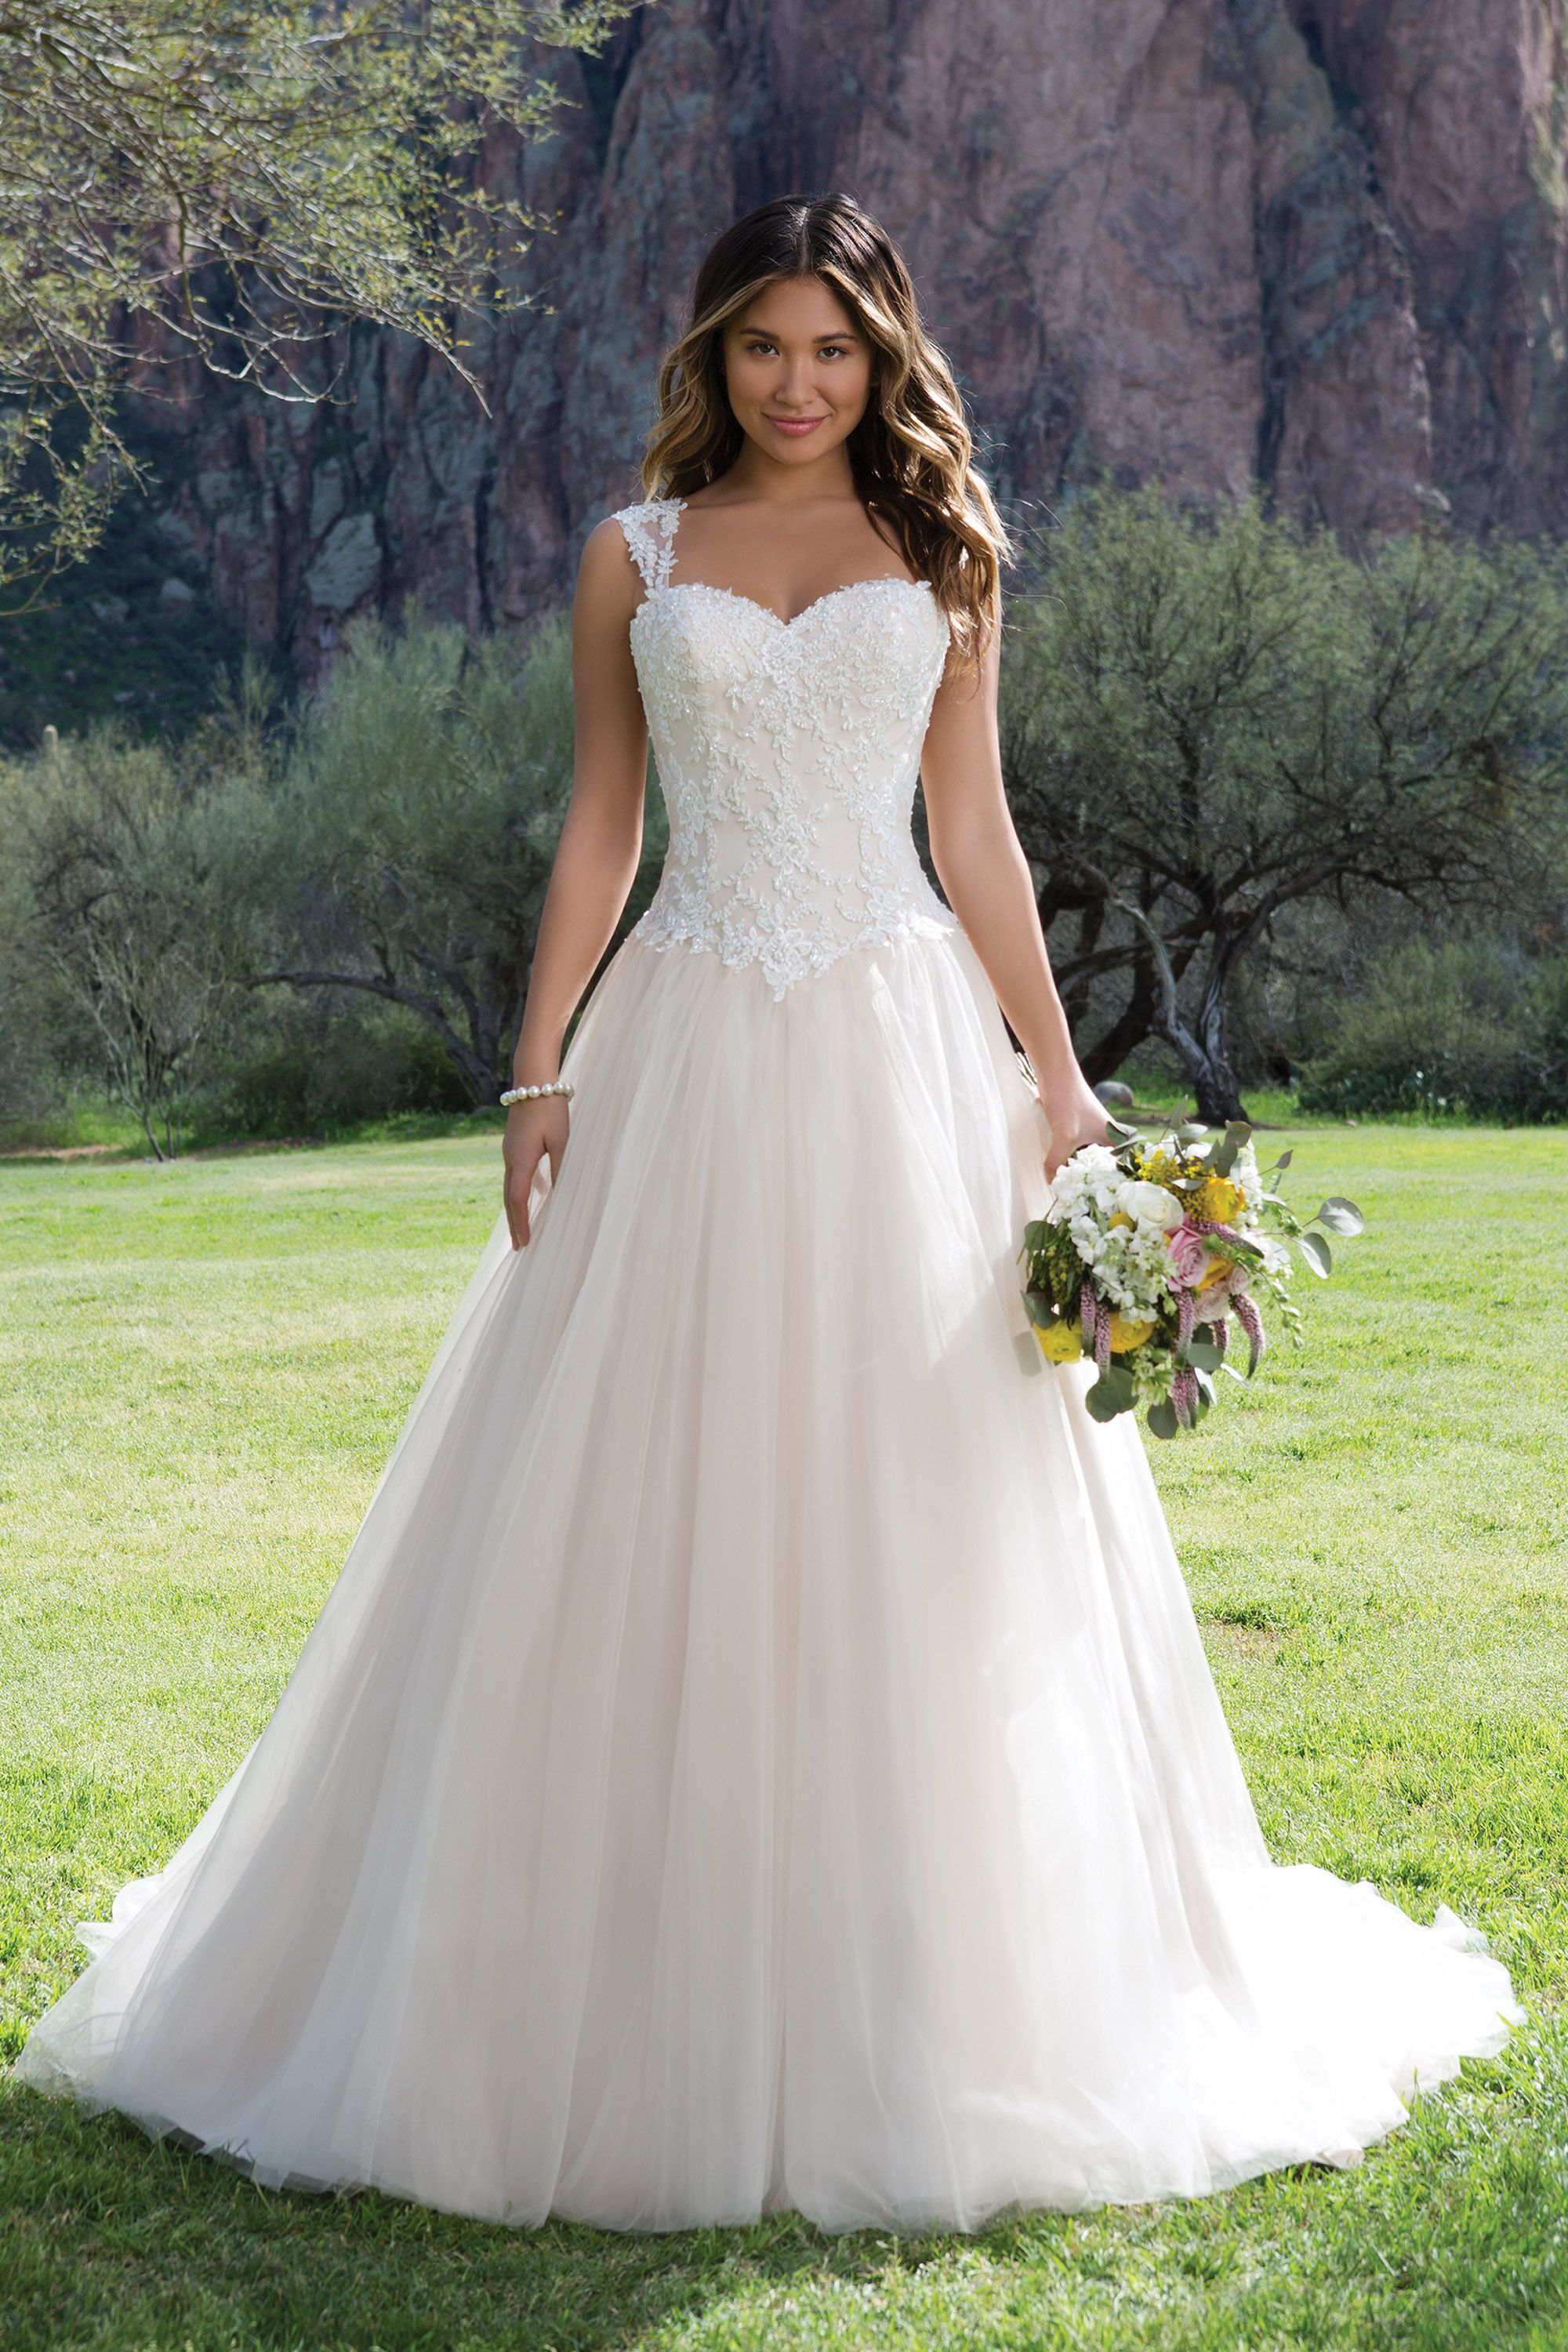 3b78148d8d4 Sweetheart Neckline Ball Gown with Lace Up Back STYLE 1141